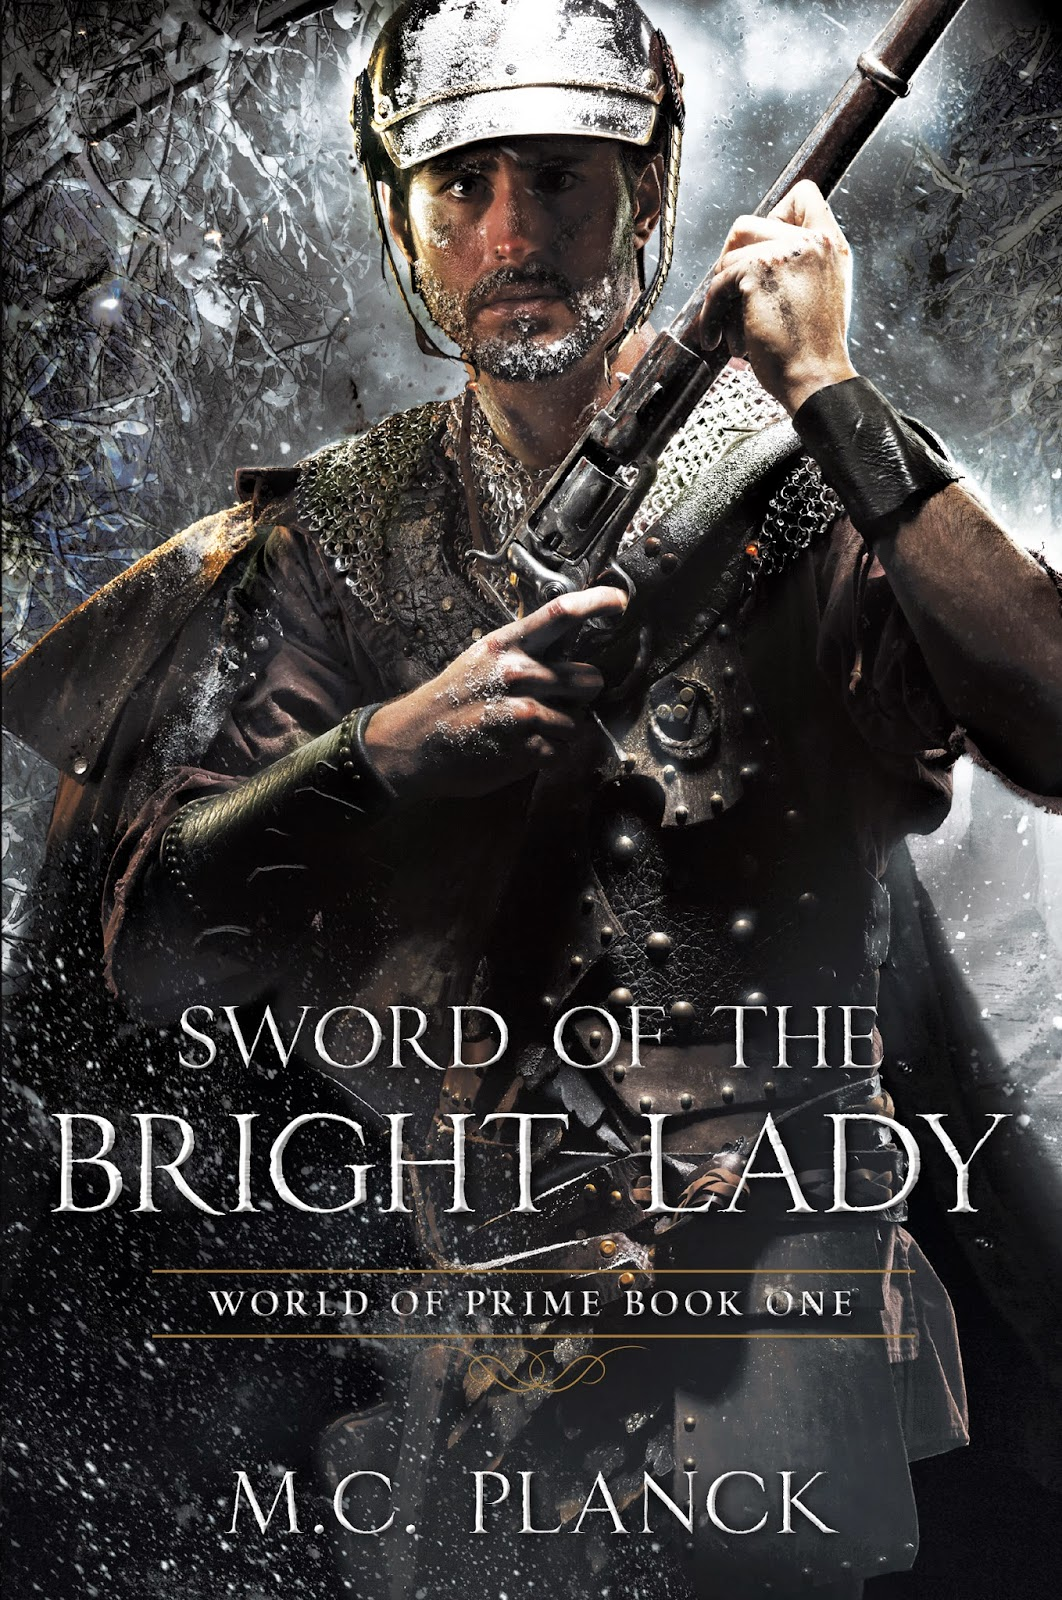 Sword of the Bright Lady by M.C. Planck